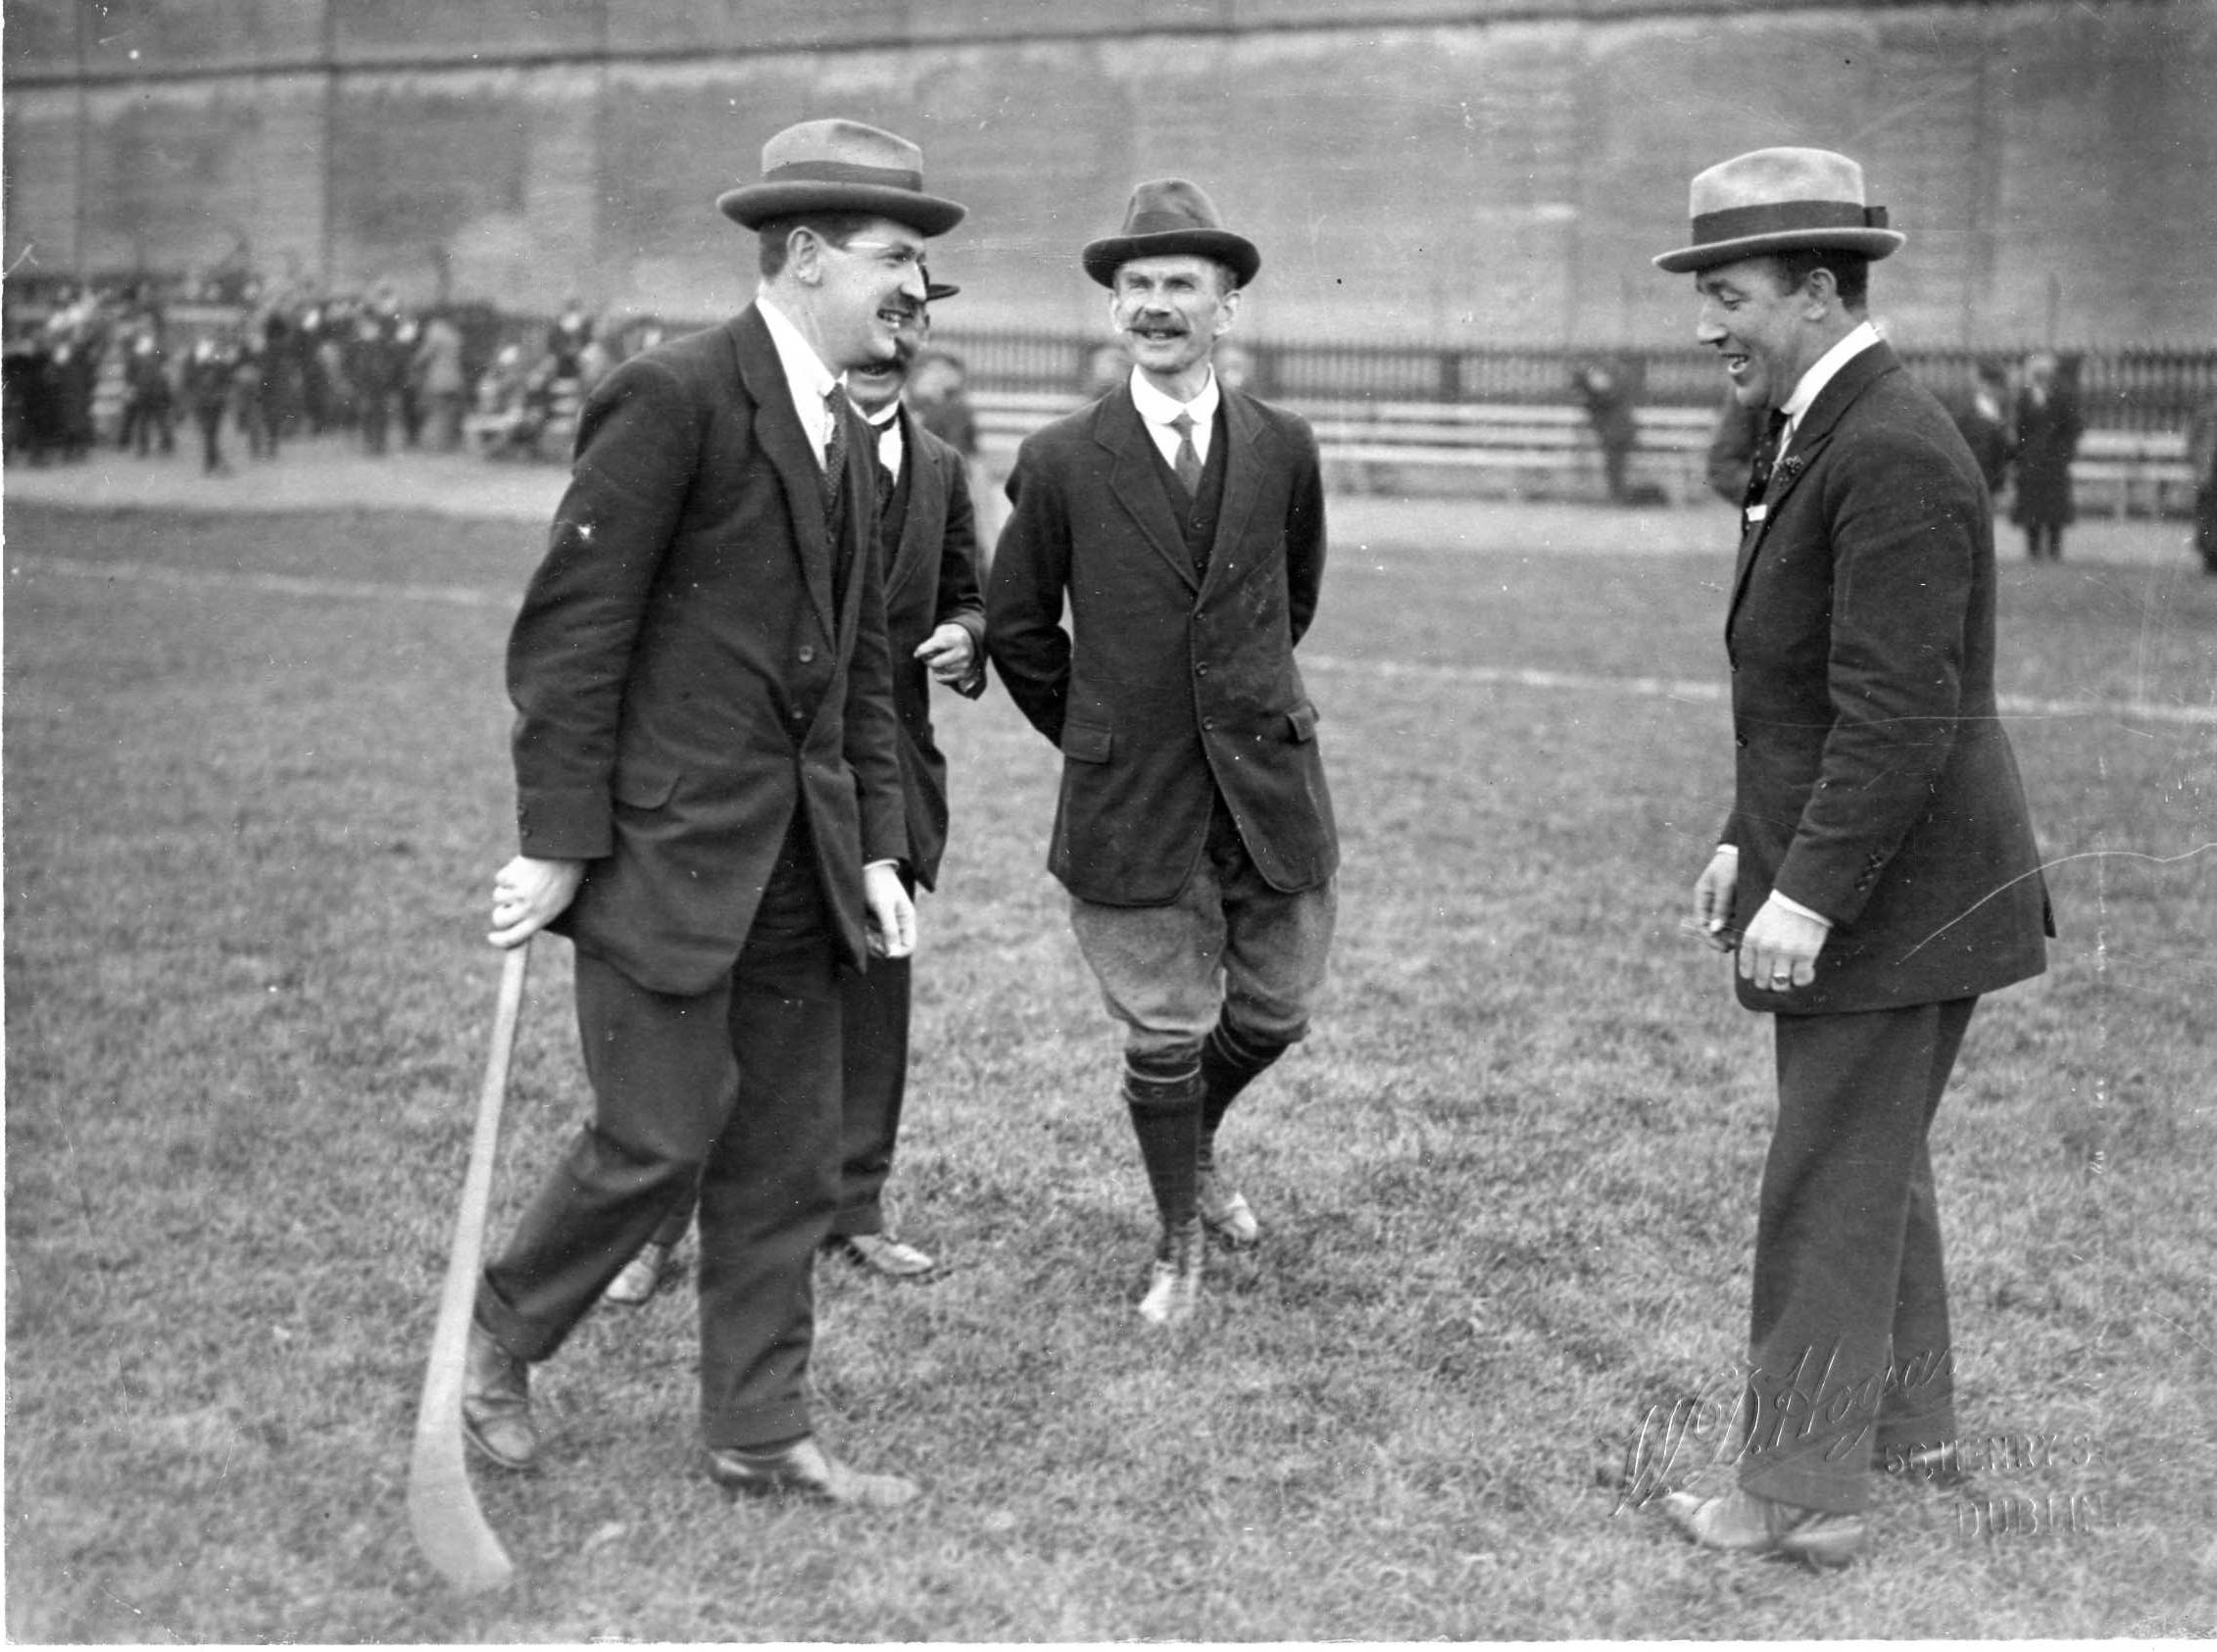 Michael Collins, Luke O'Toole, and Harry Boland pictured at Croke Park. O'Toole was General Secretary of the GAA from 1901 to 1929 and central to the success of 'Gaelic Sunday'.